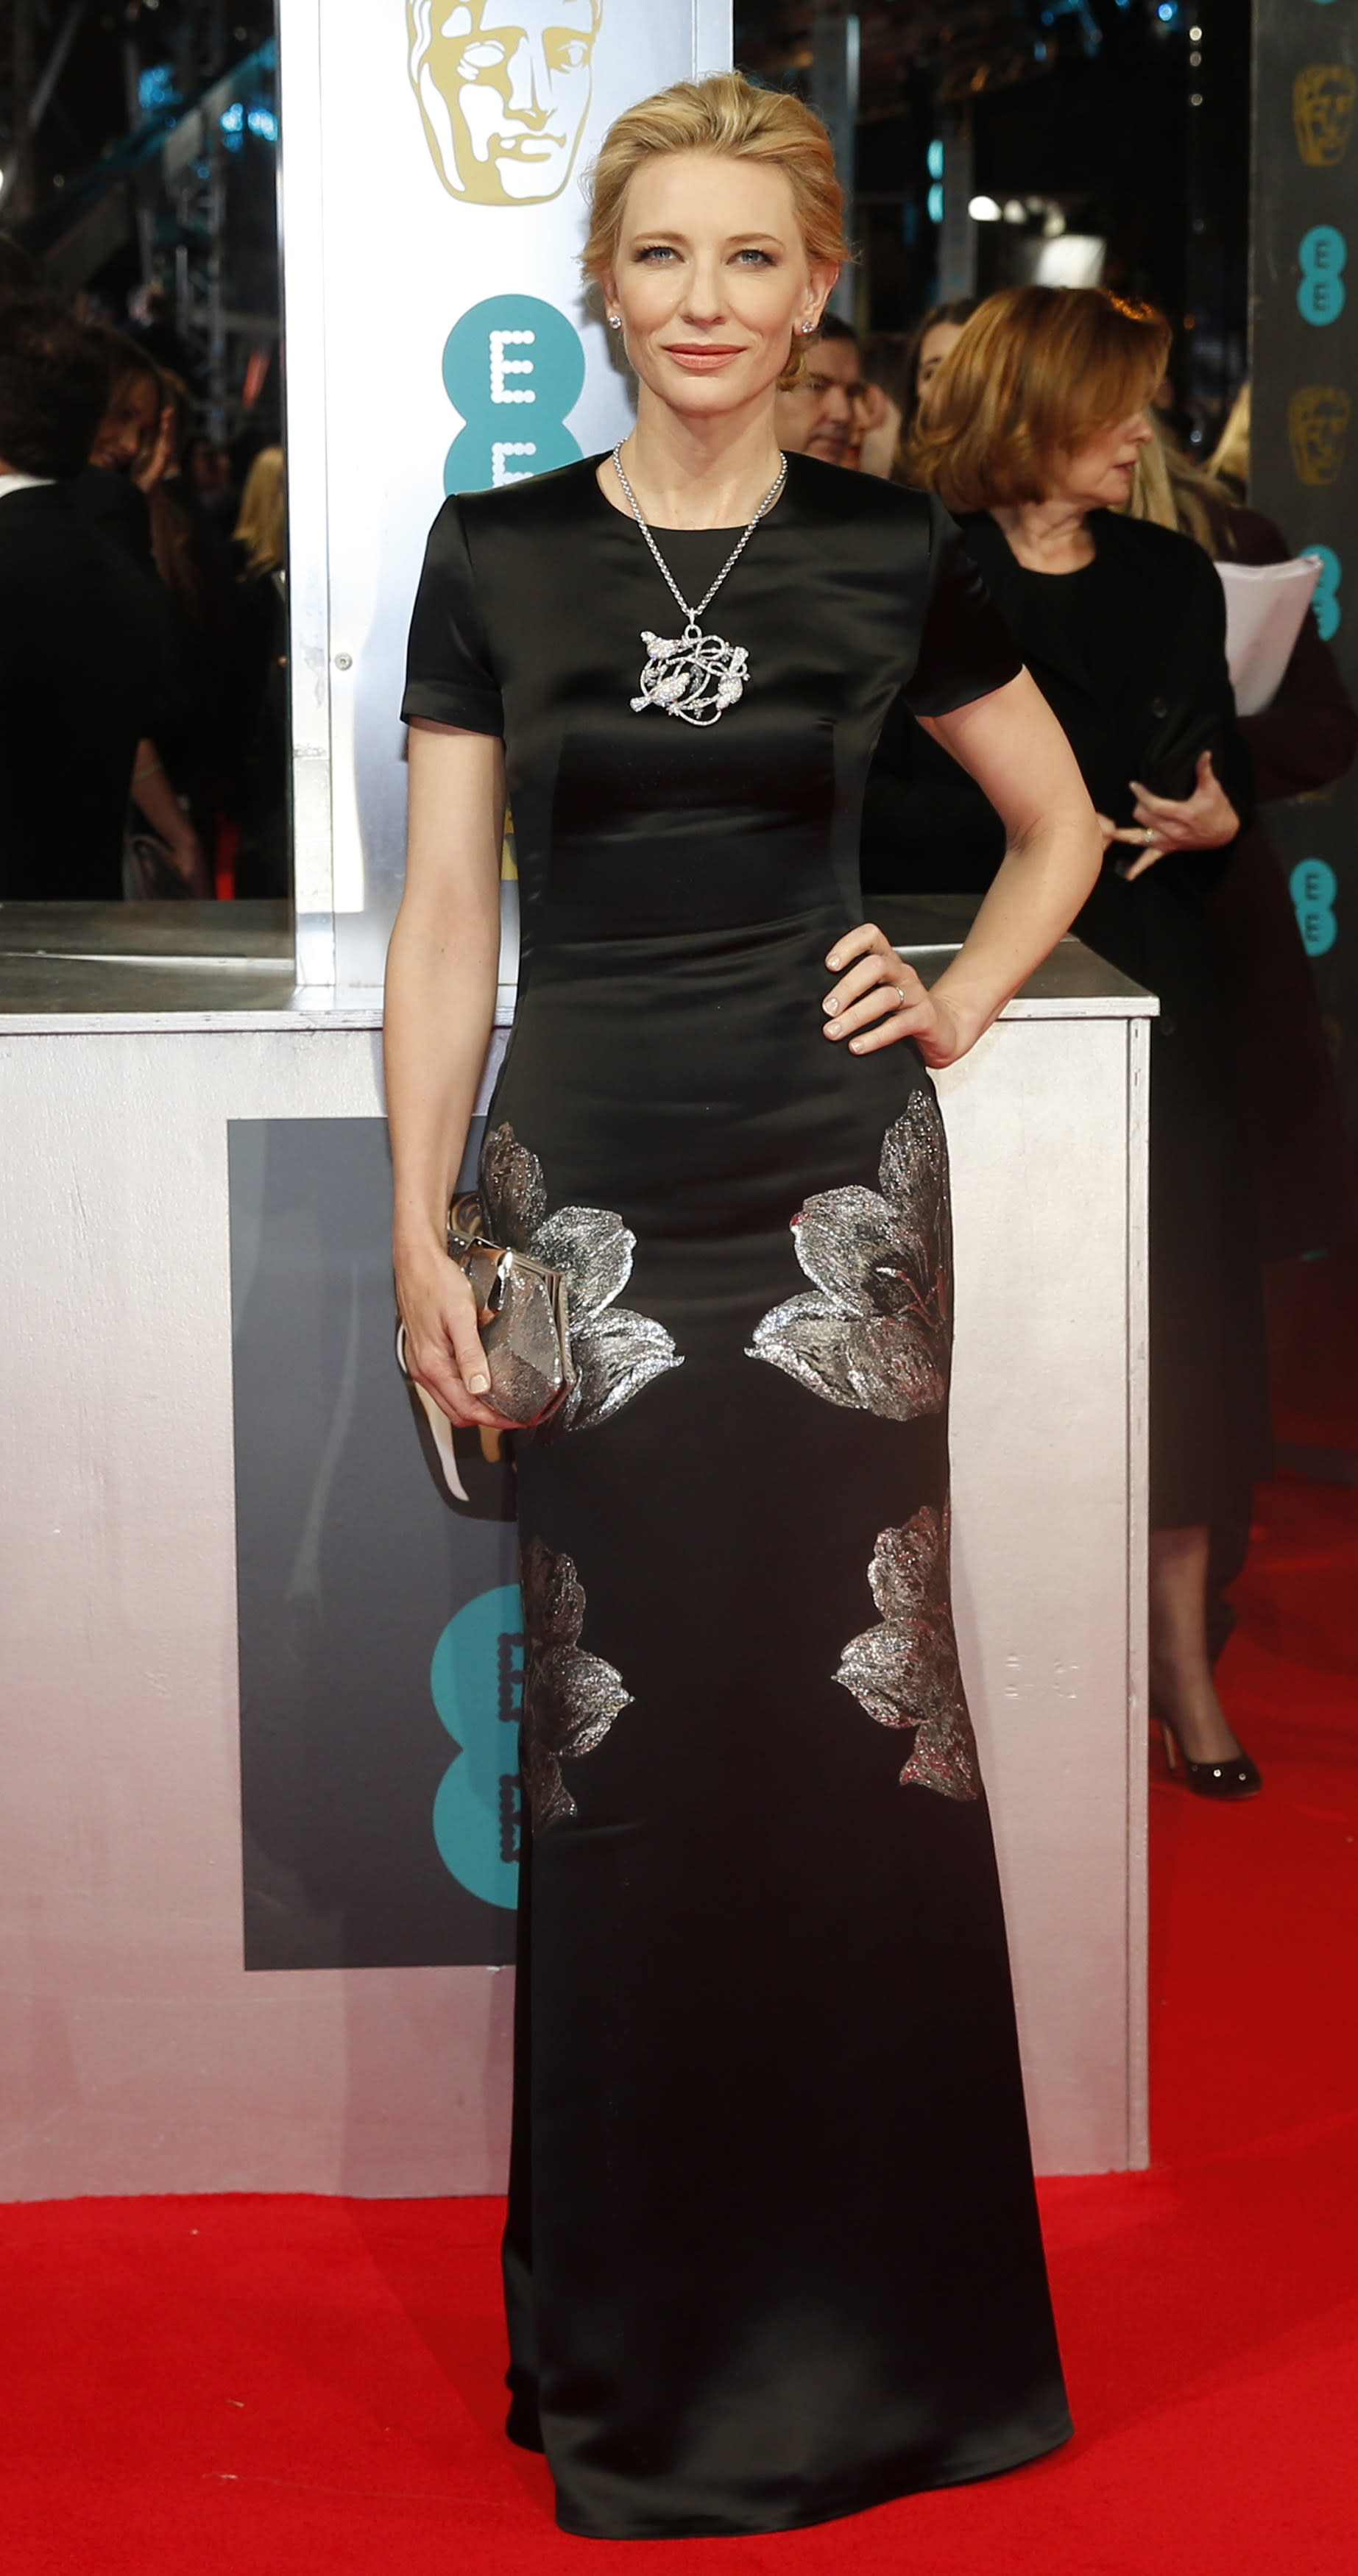 Stars Step Out on Red Carpet for British Academy Film Awards 2014